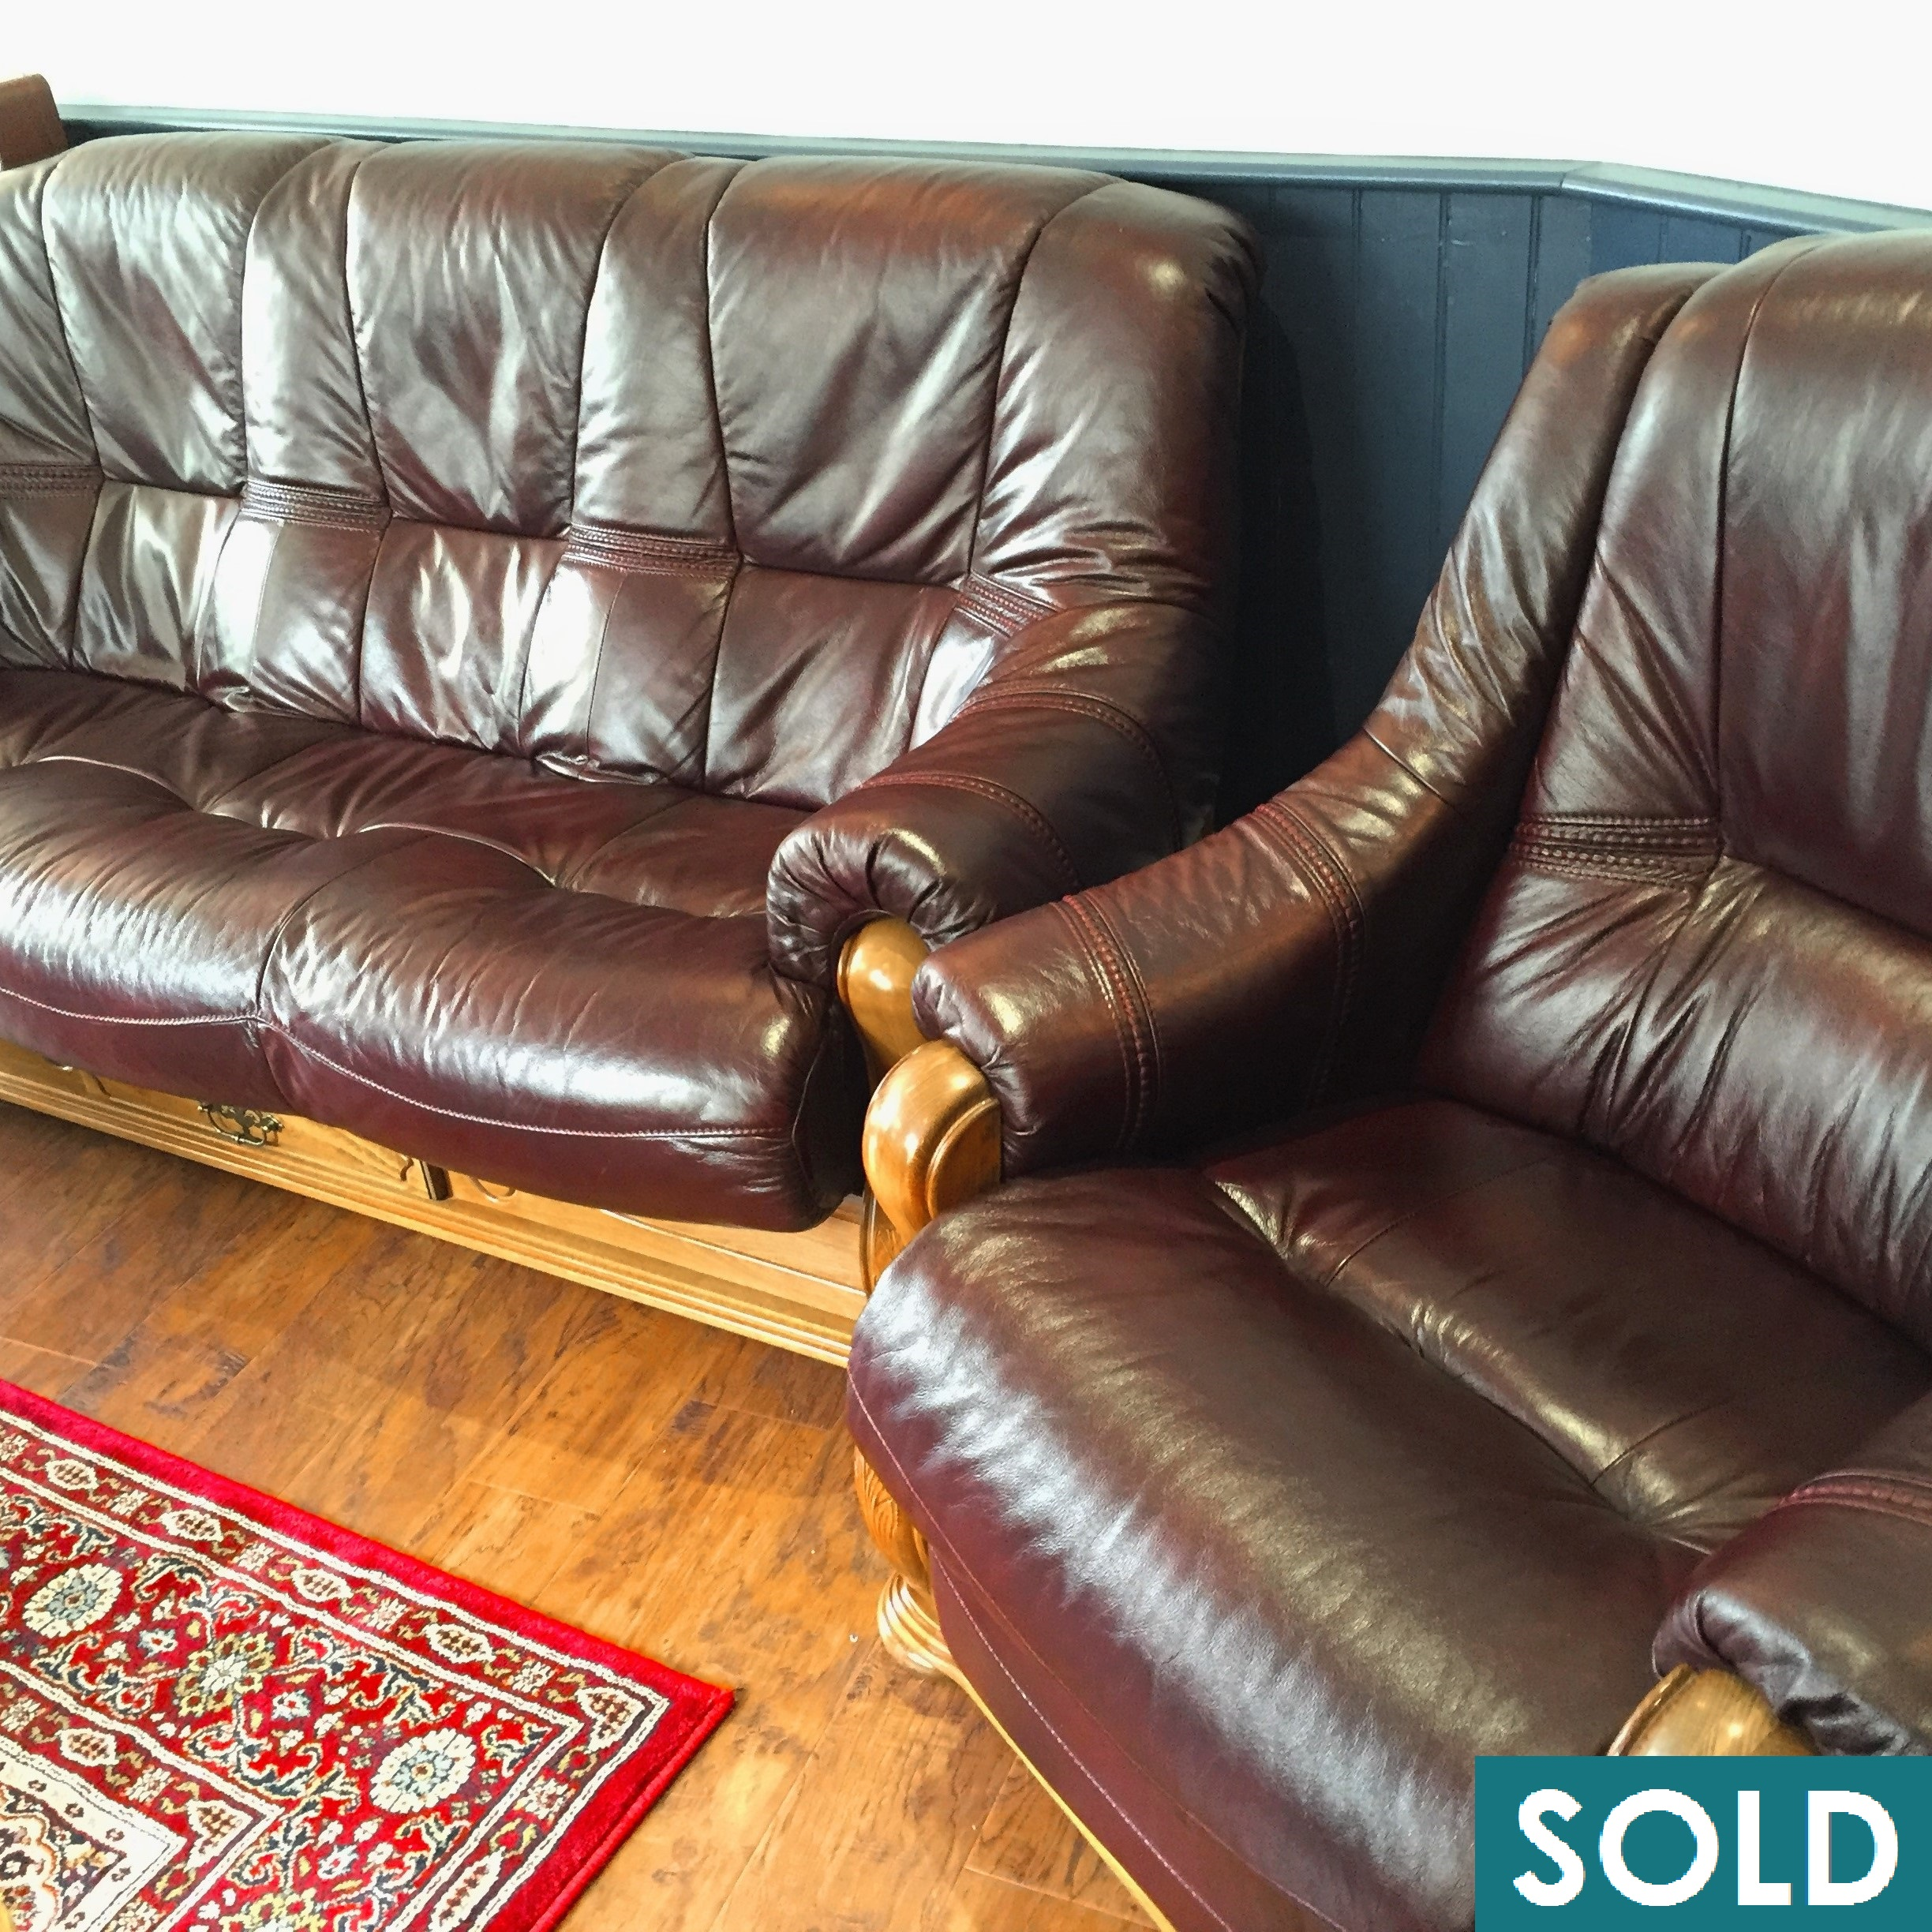 SOLD Burgundy leather 3 seat sofa and reclining chair